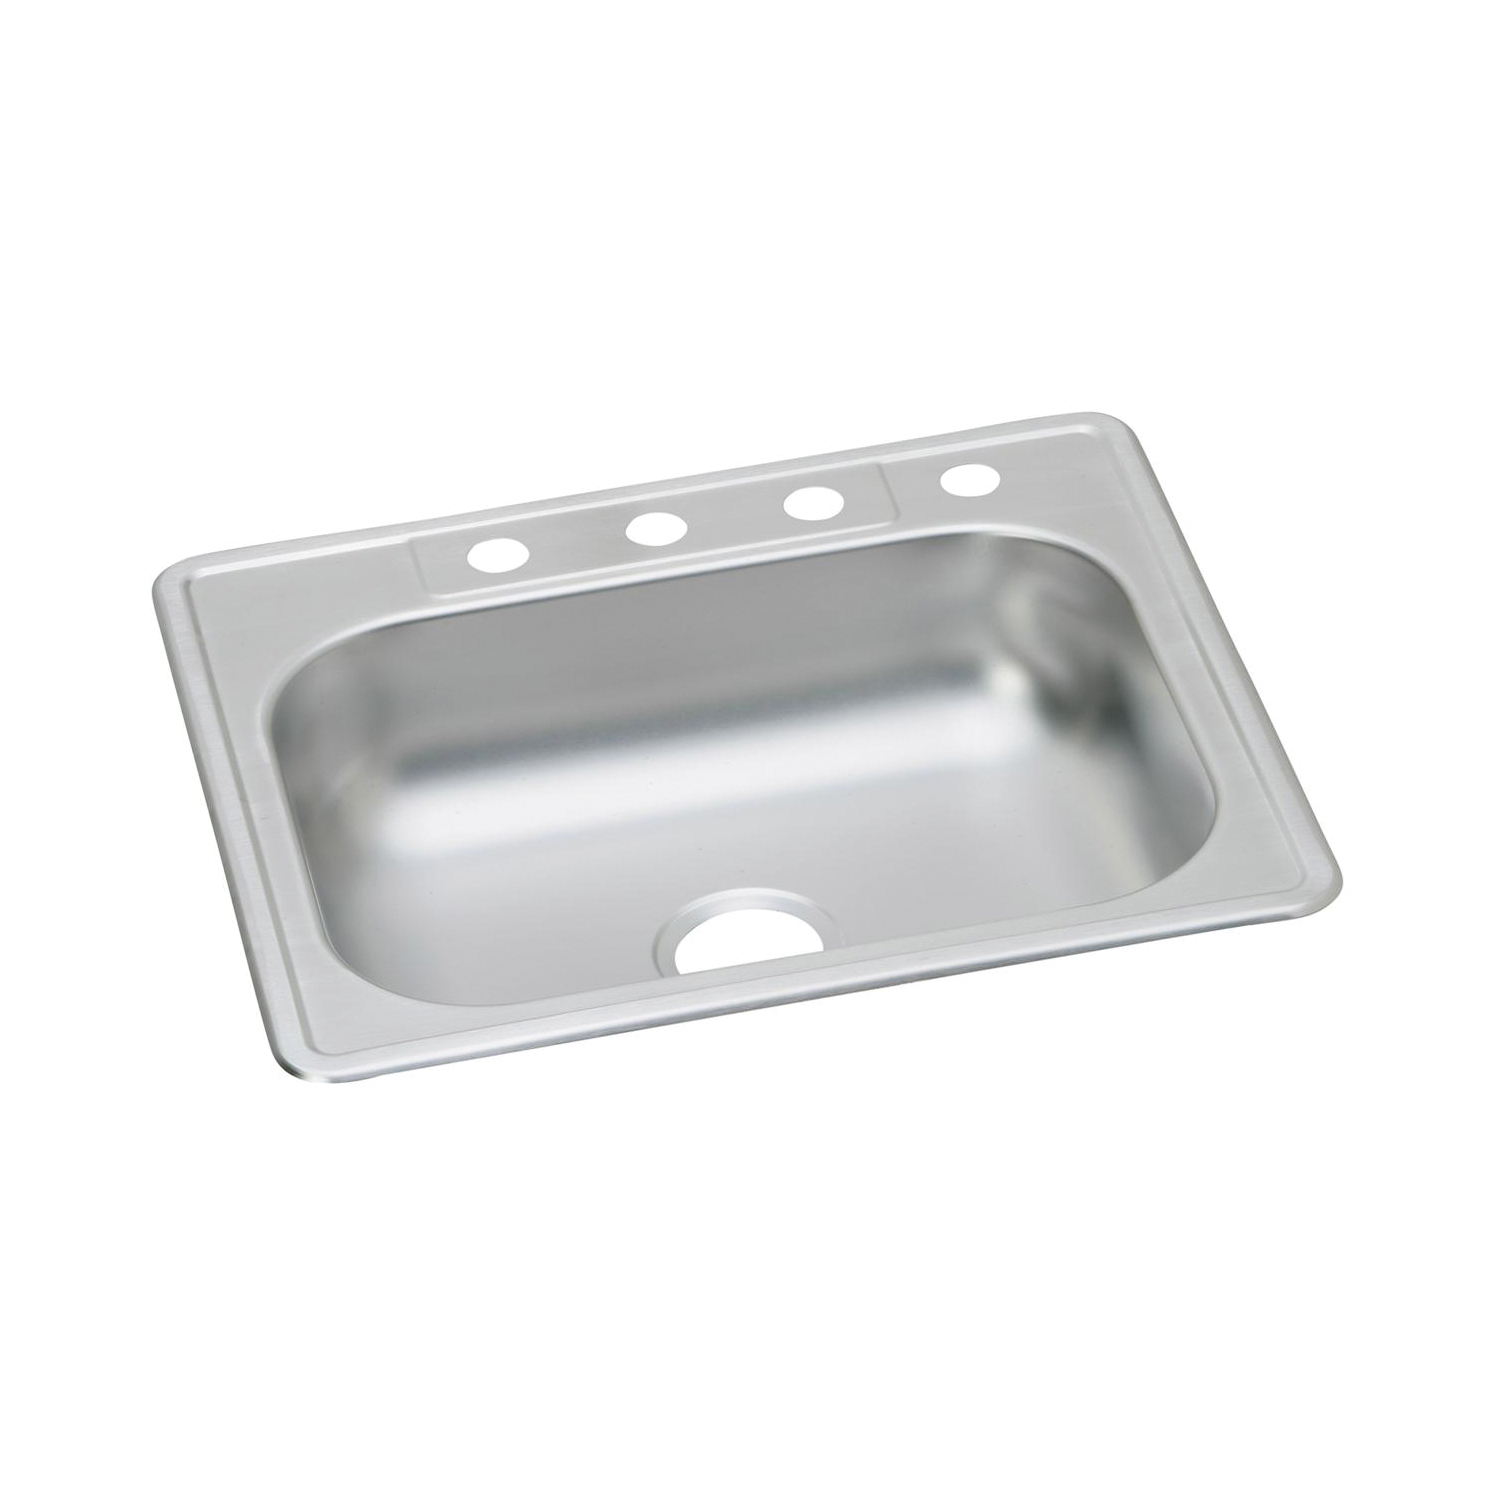 Elkay® K125223 Kitchen Sink, Dayton®, Rectangular, 21 in L x 15-3/4 in W x 5-7/8 in D Bowl, 3 Faucet Holes, 25 in L x 22 in W x 6-1/16 in H, Top Mount, Stainless Steel, Satin